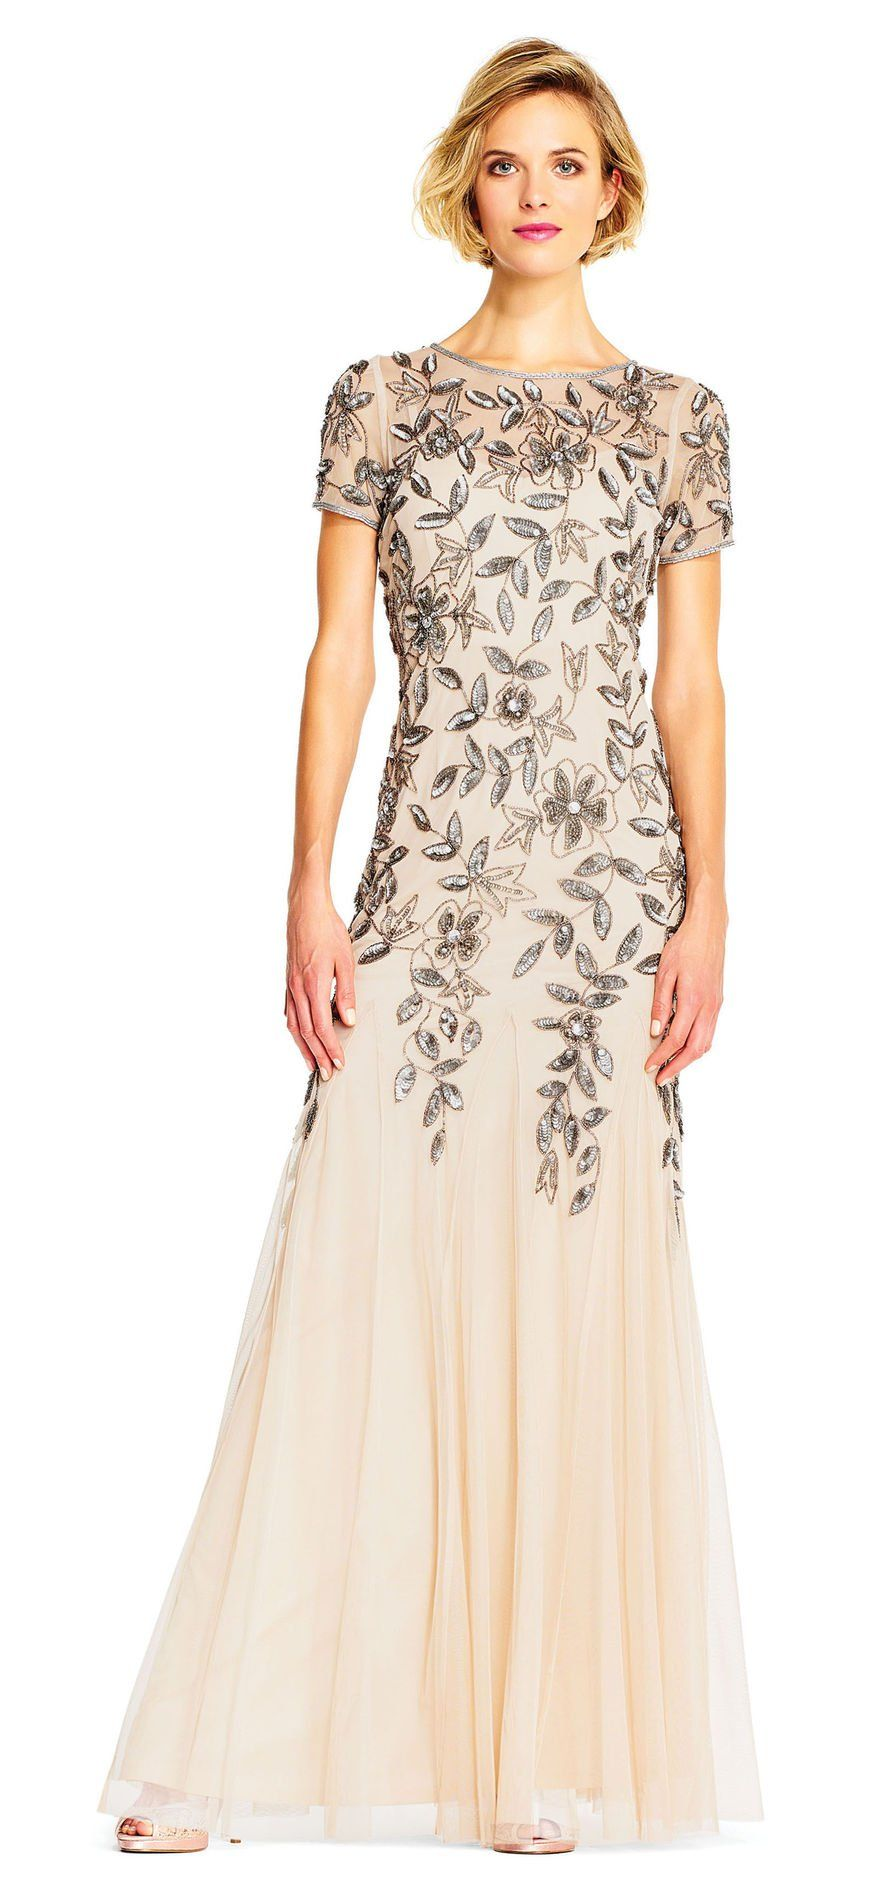 Floral beaded godet gown with short sleeves in getting